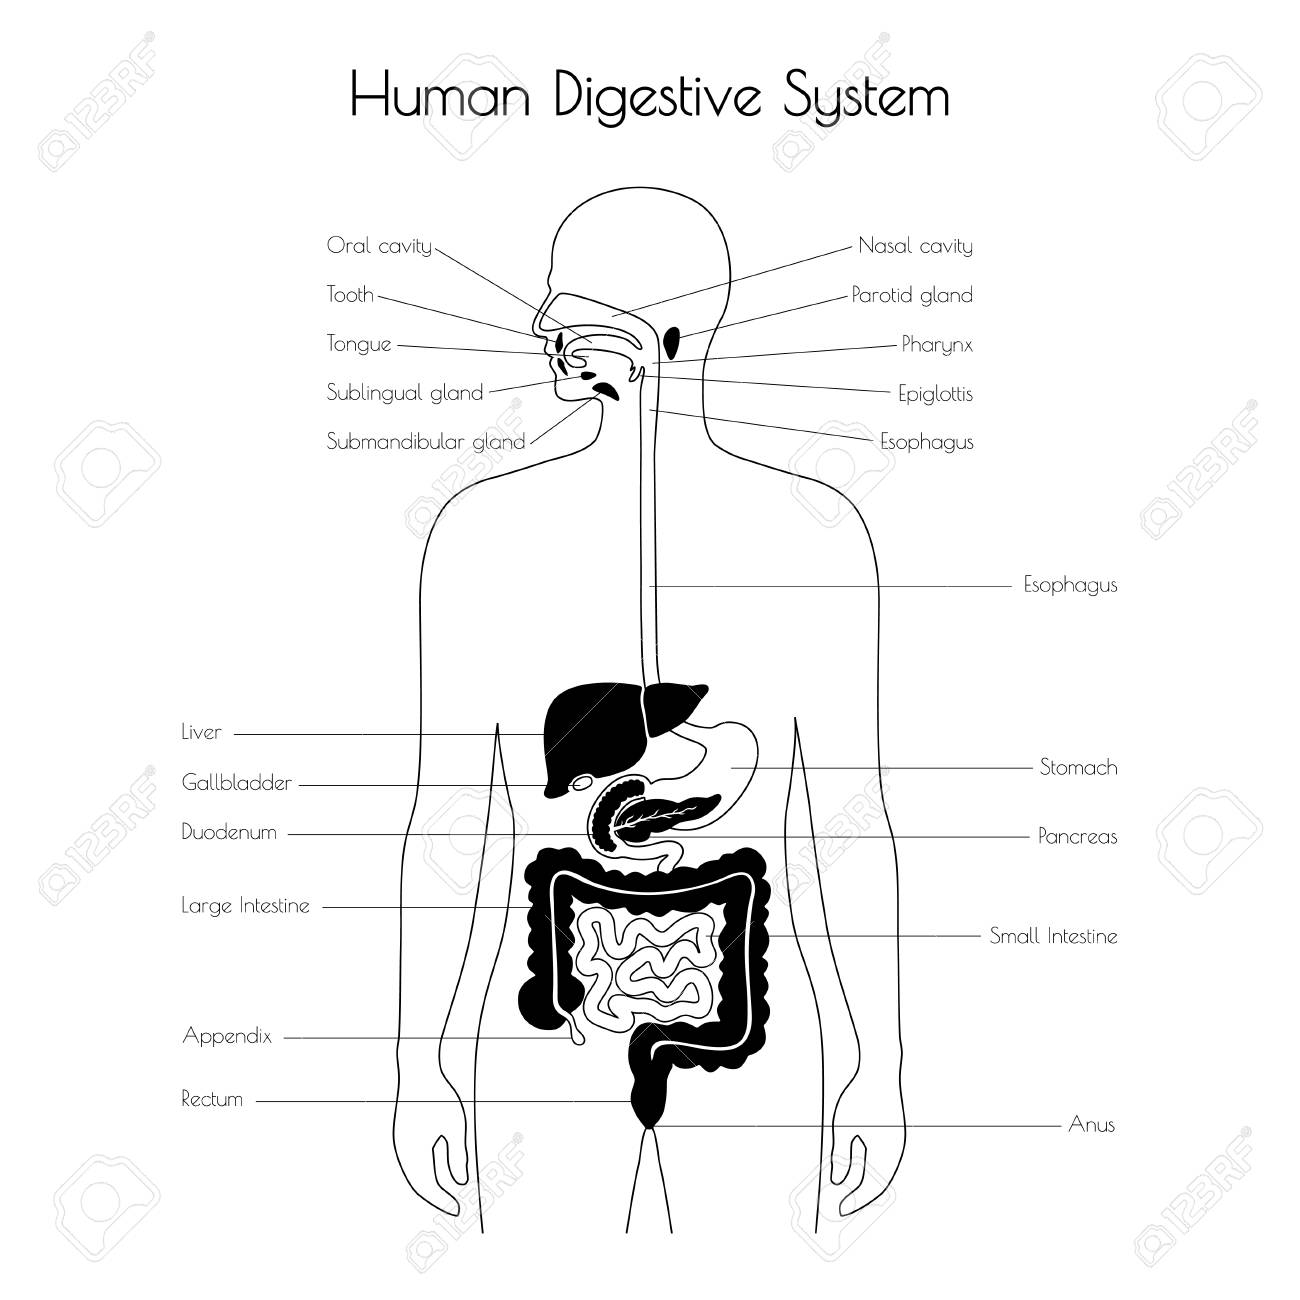 hight resolution of esophagus stomach duodenum pancreas intestine gallbladder liver pharynx icon medical information poster internal organ symbol